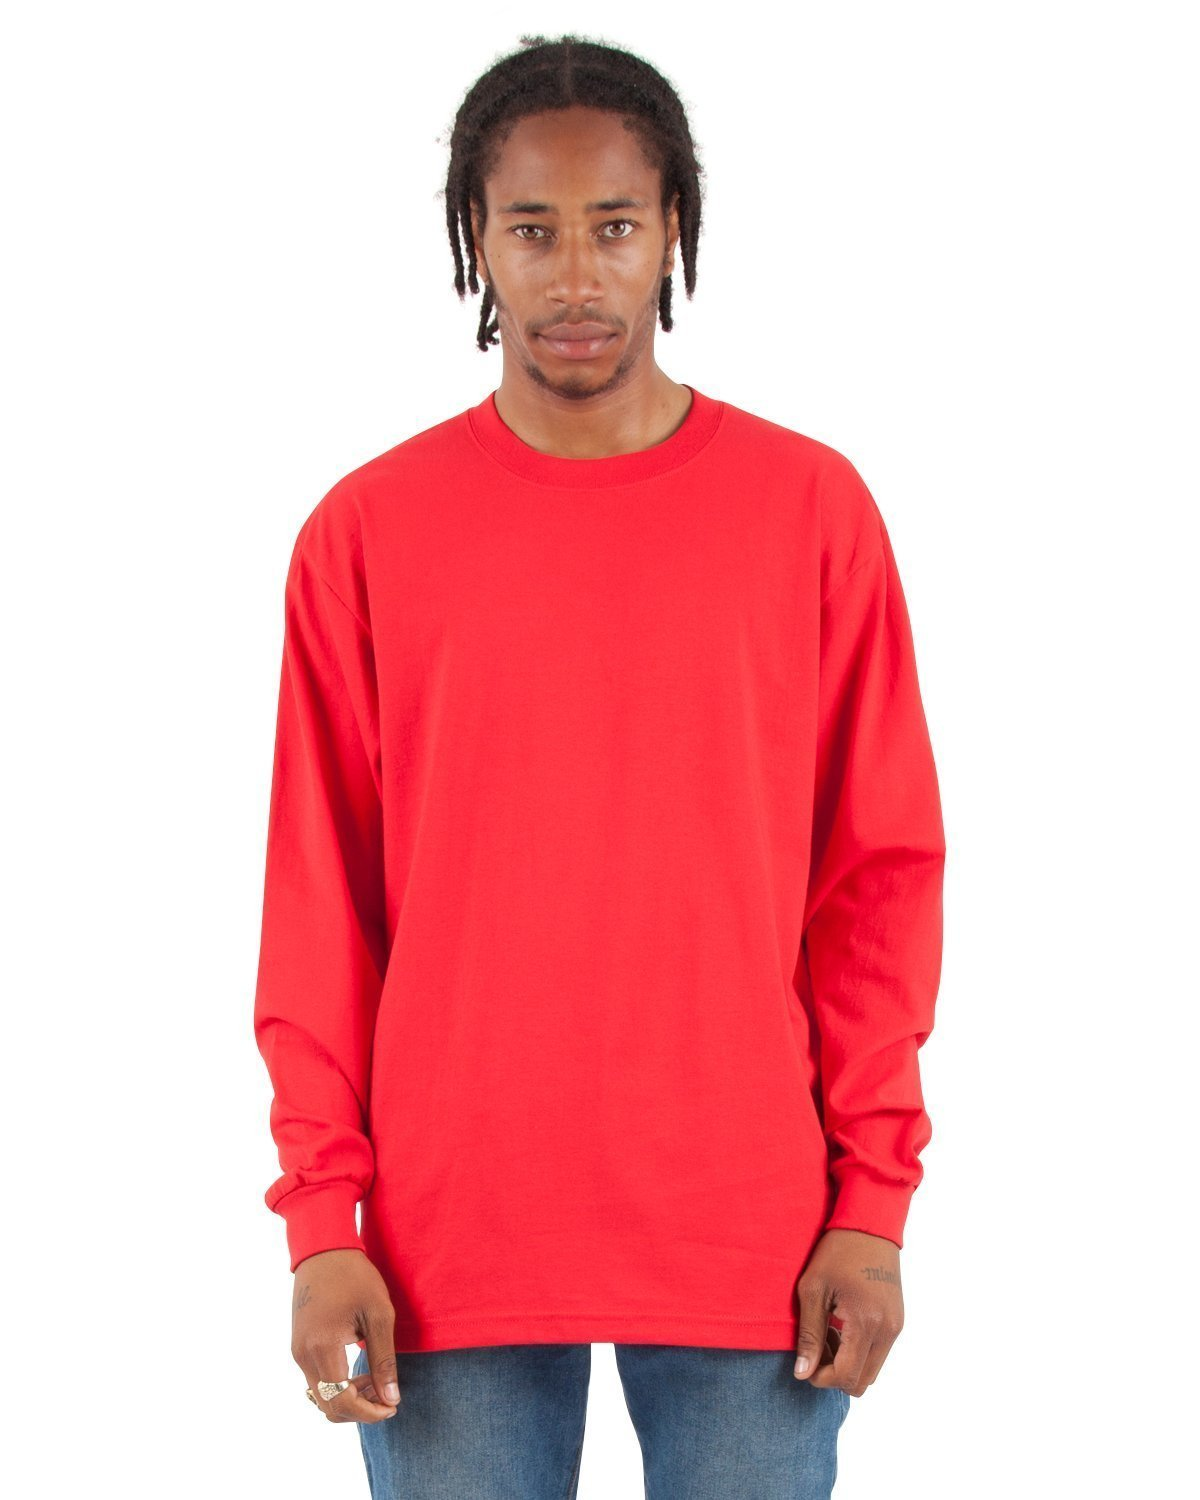 7.5 oz Max Heavyweight Long Sleeve - Standard Sizes